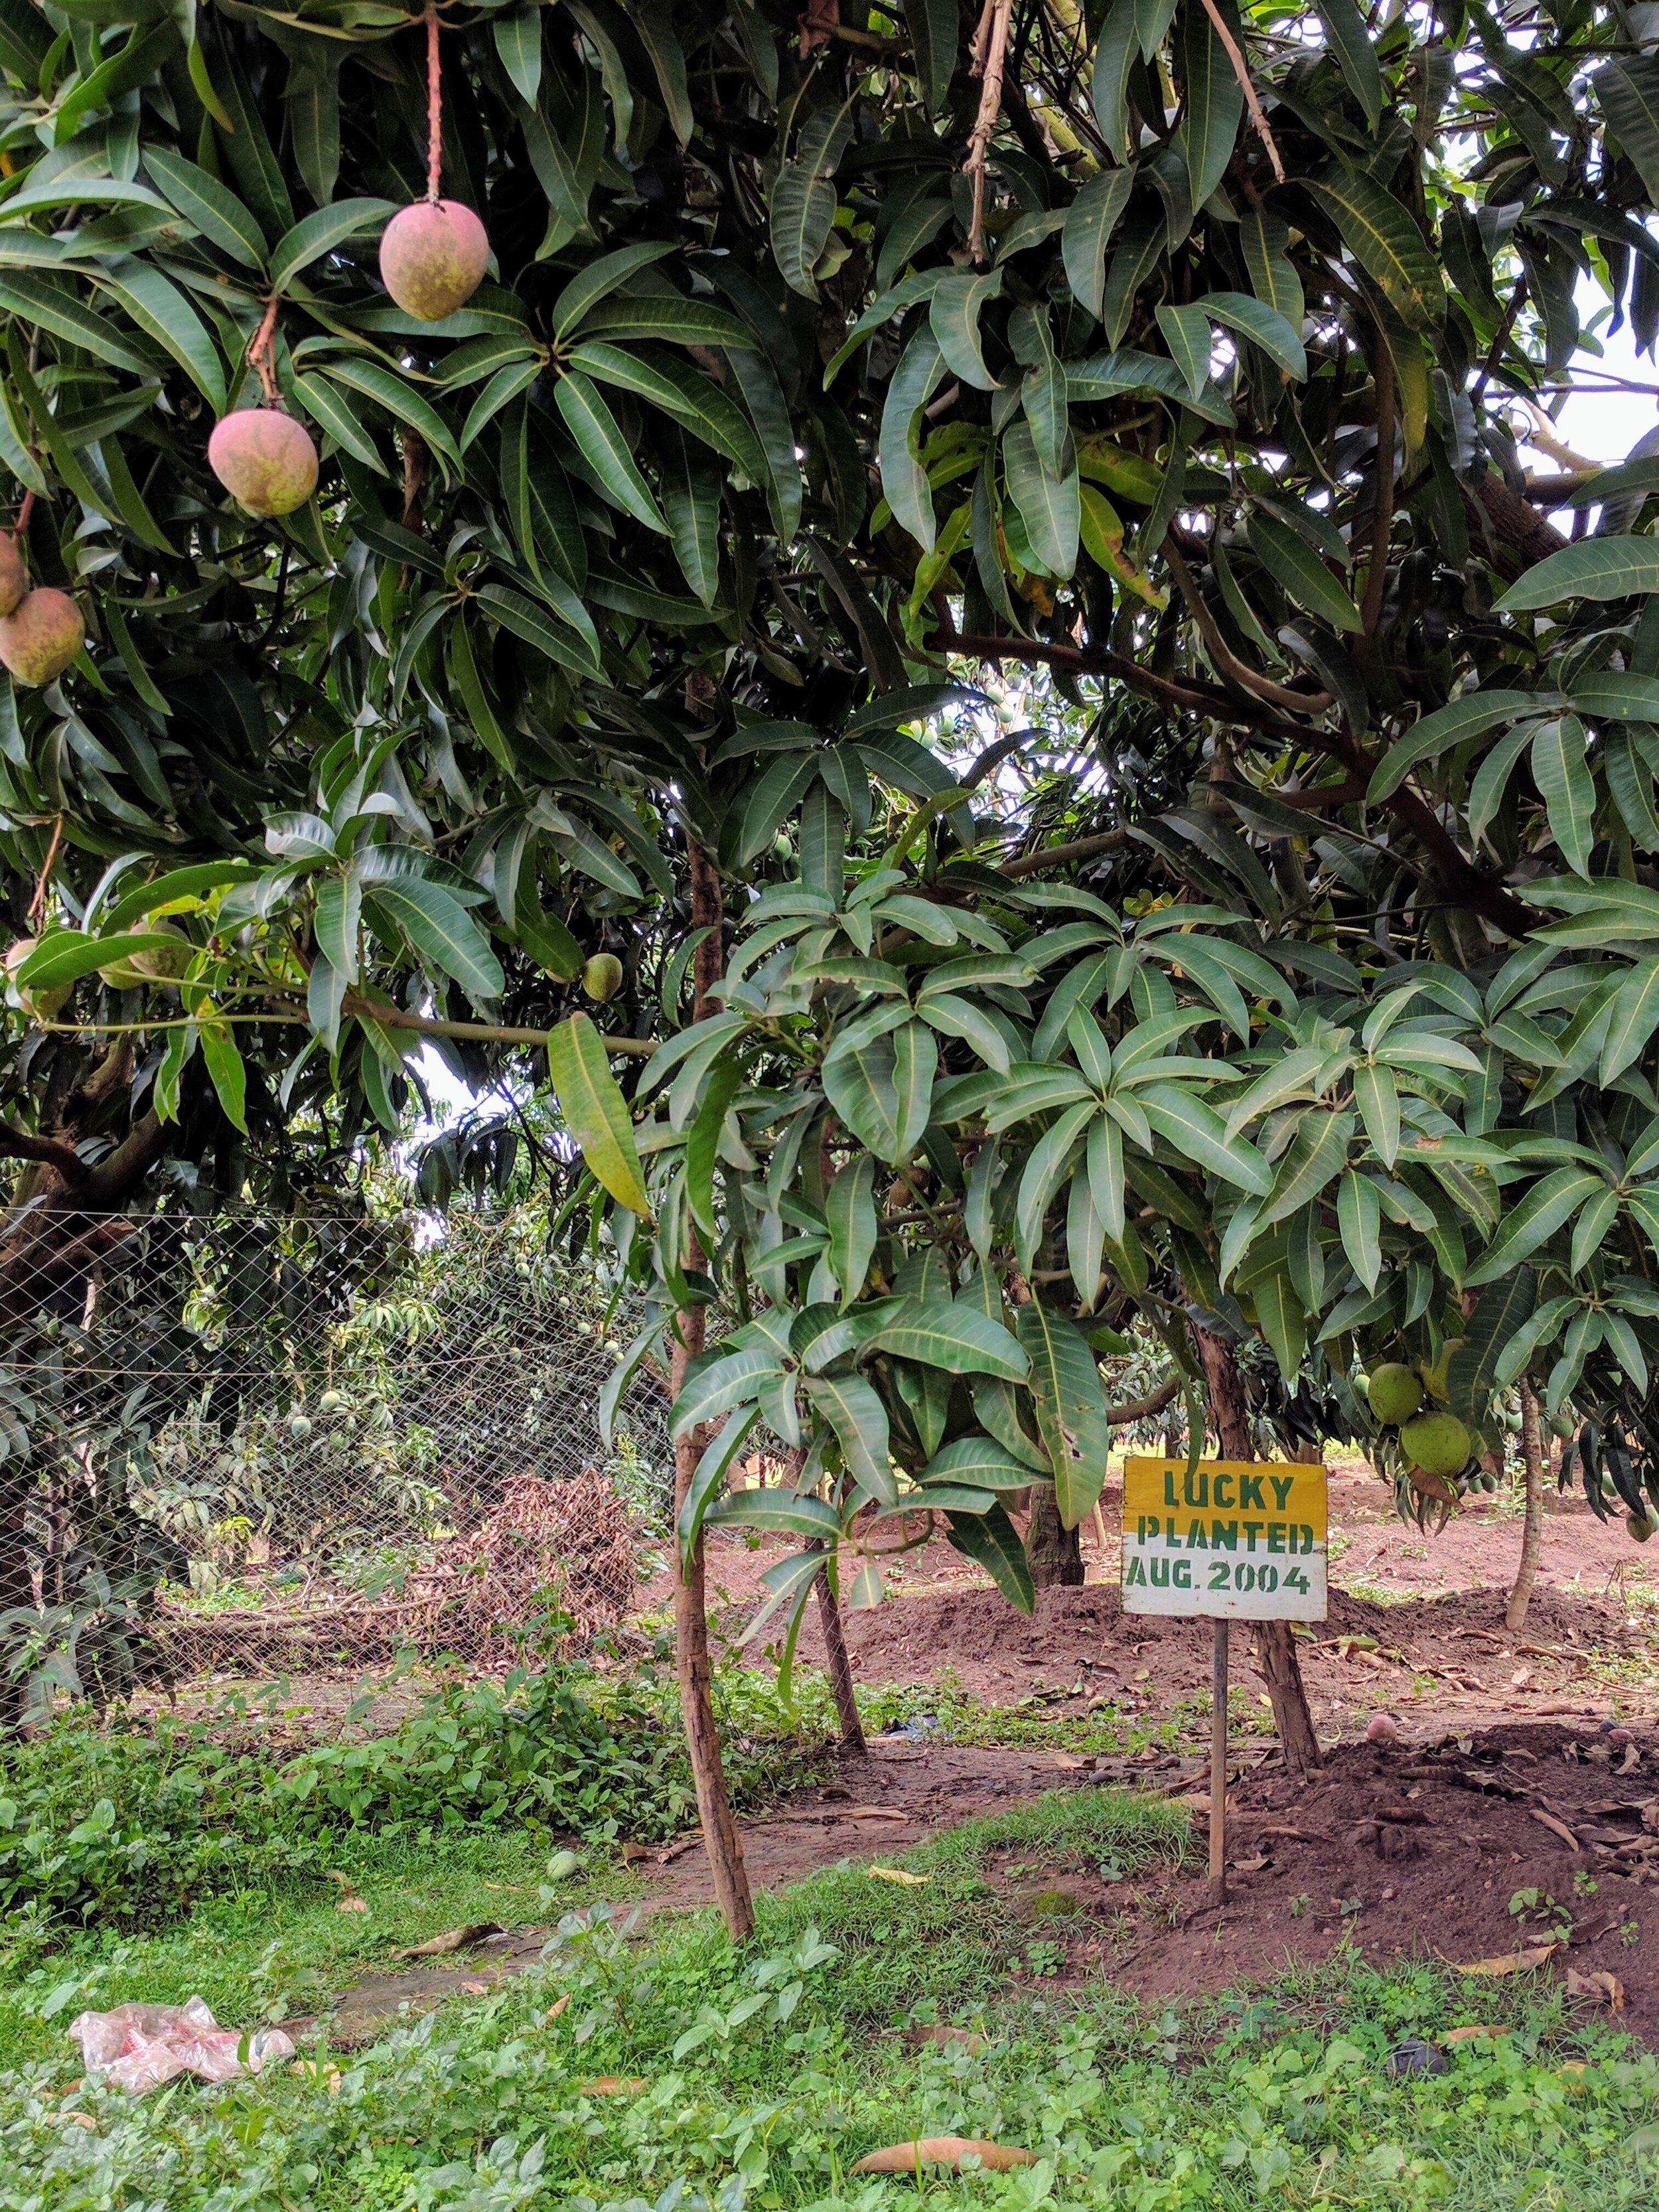 Farm_Mango Tree2.jpg